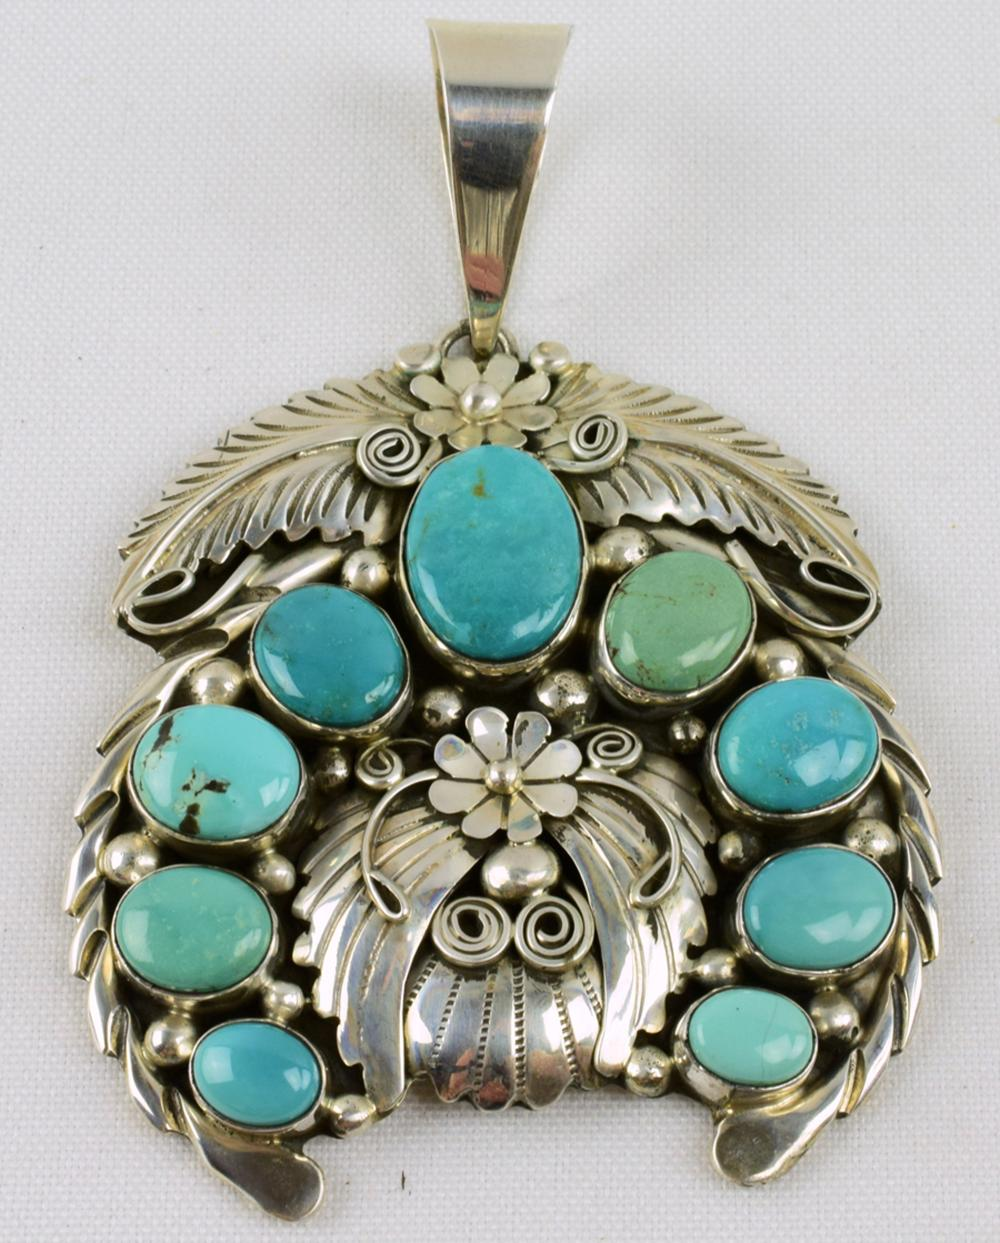 Navajo Sterling Silver Turquoise & Feather Naja Pendant